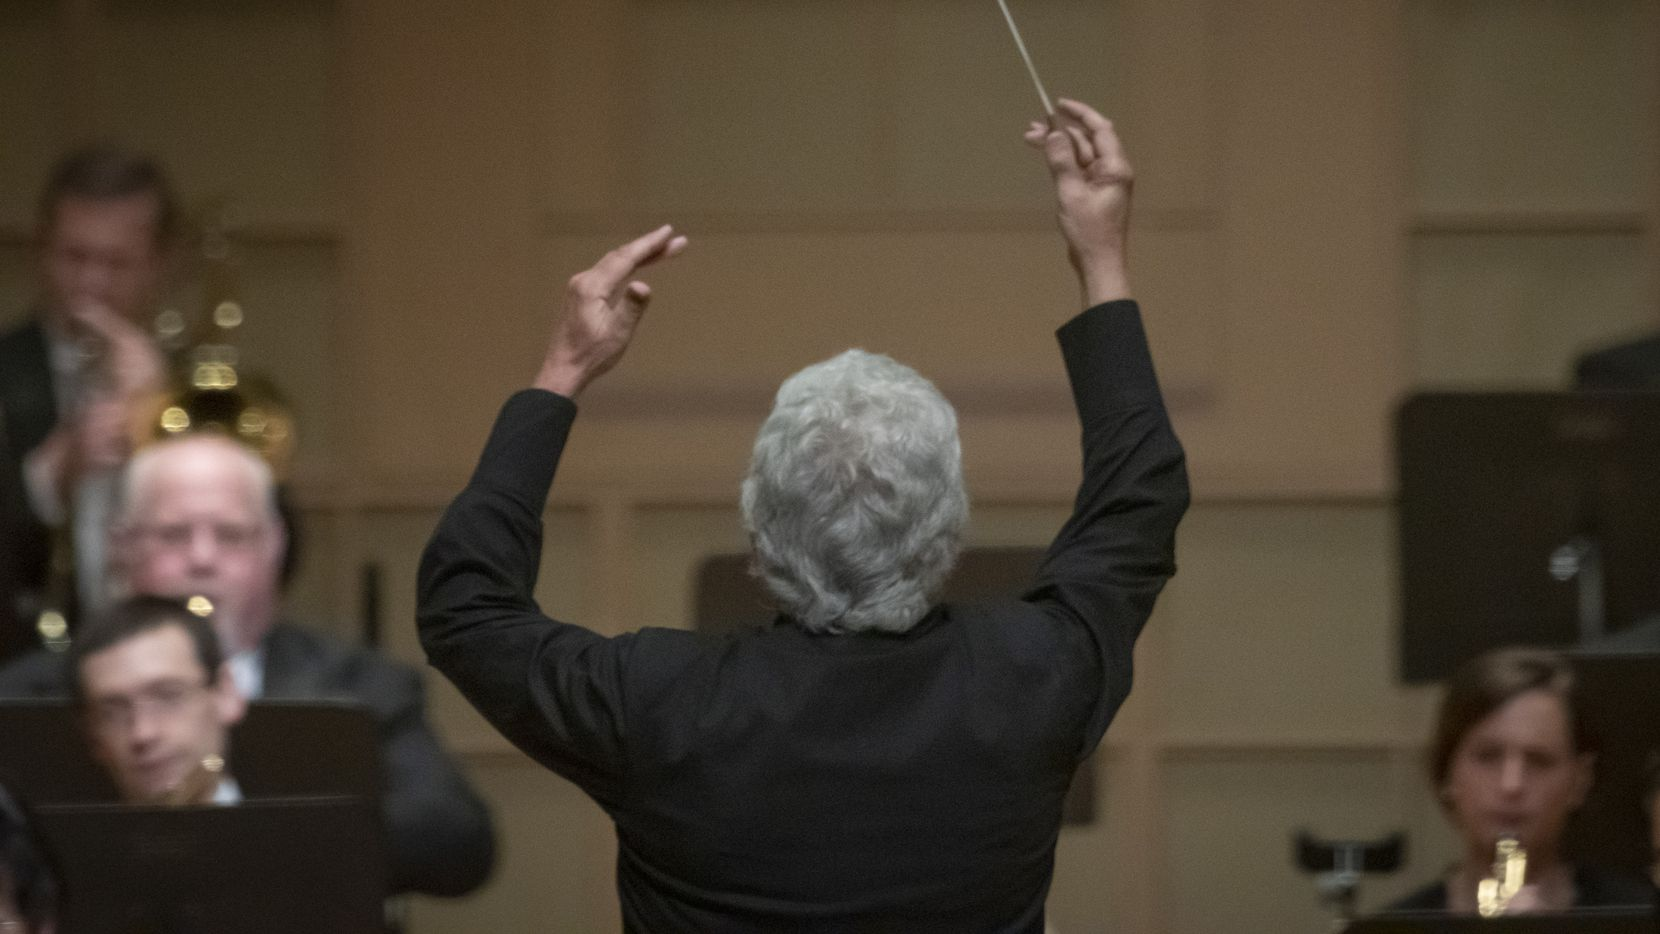 Guest conductor Peter Oundjian leads the Dallas Symphony Orchestra in Glinka's 'Ruslan and Lyudmila' Overture at the Meyerson Symphony Center on May 28 in Dallas.